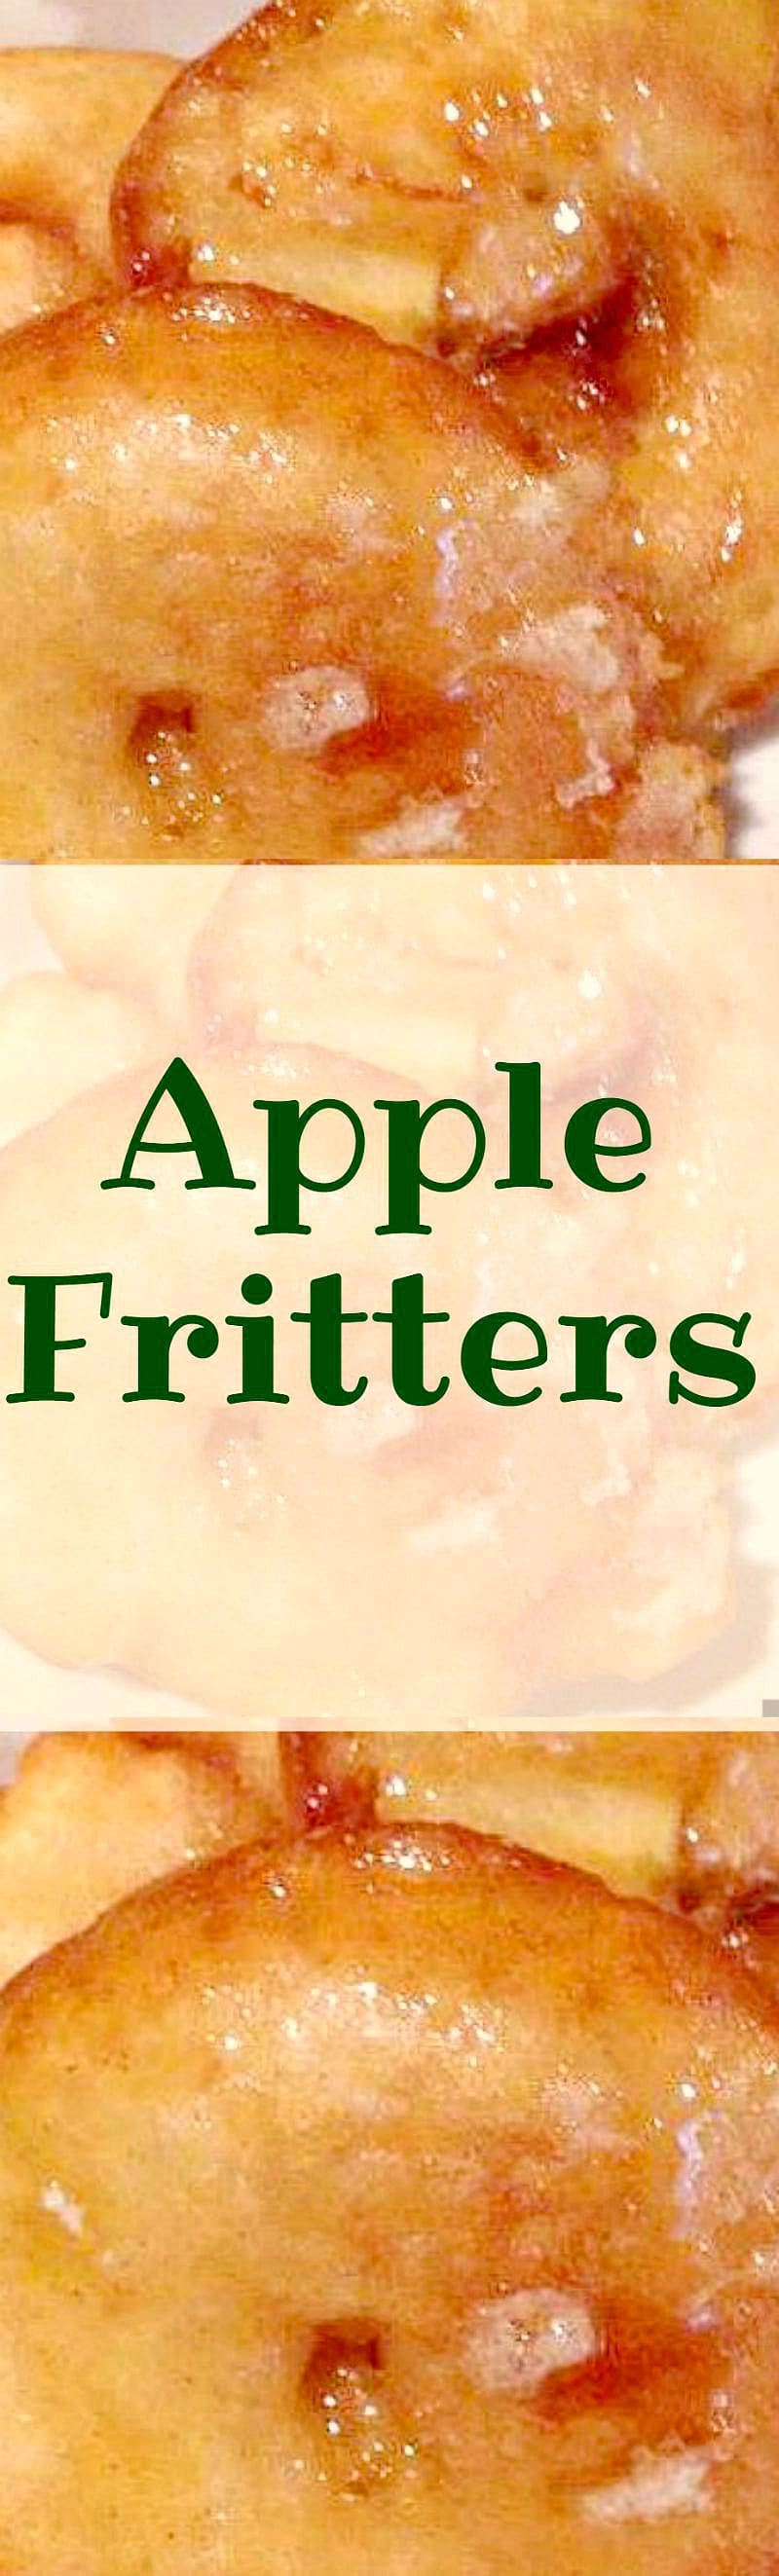 Apple Fritters! Oh boy! These are super easy to make and so delicious. Serve warm with some syrup, ice cream, whipped cream, or all three!